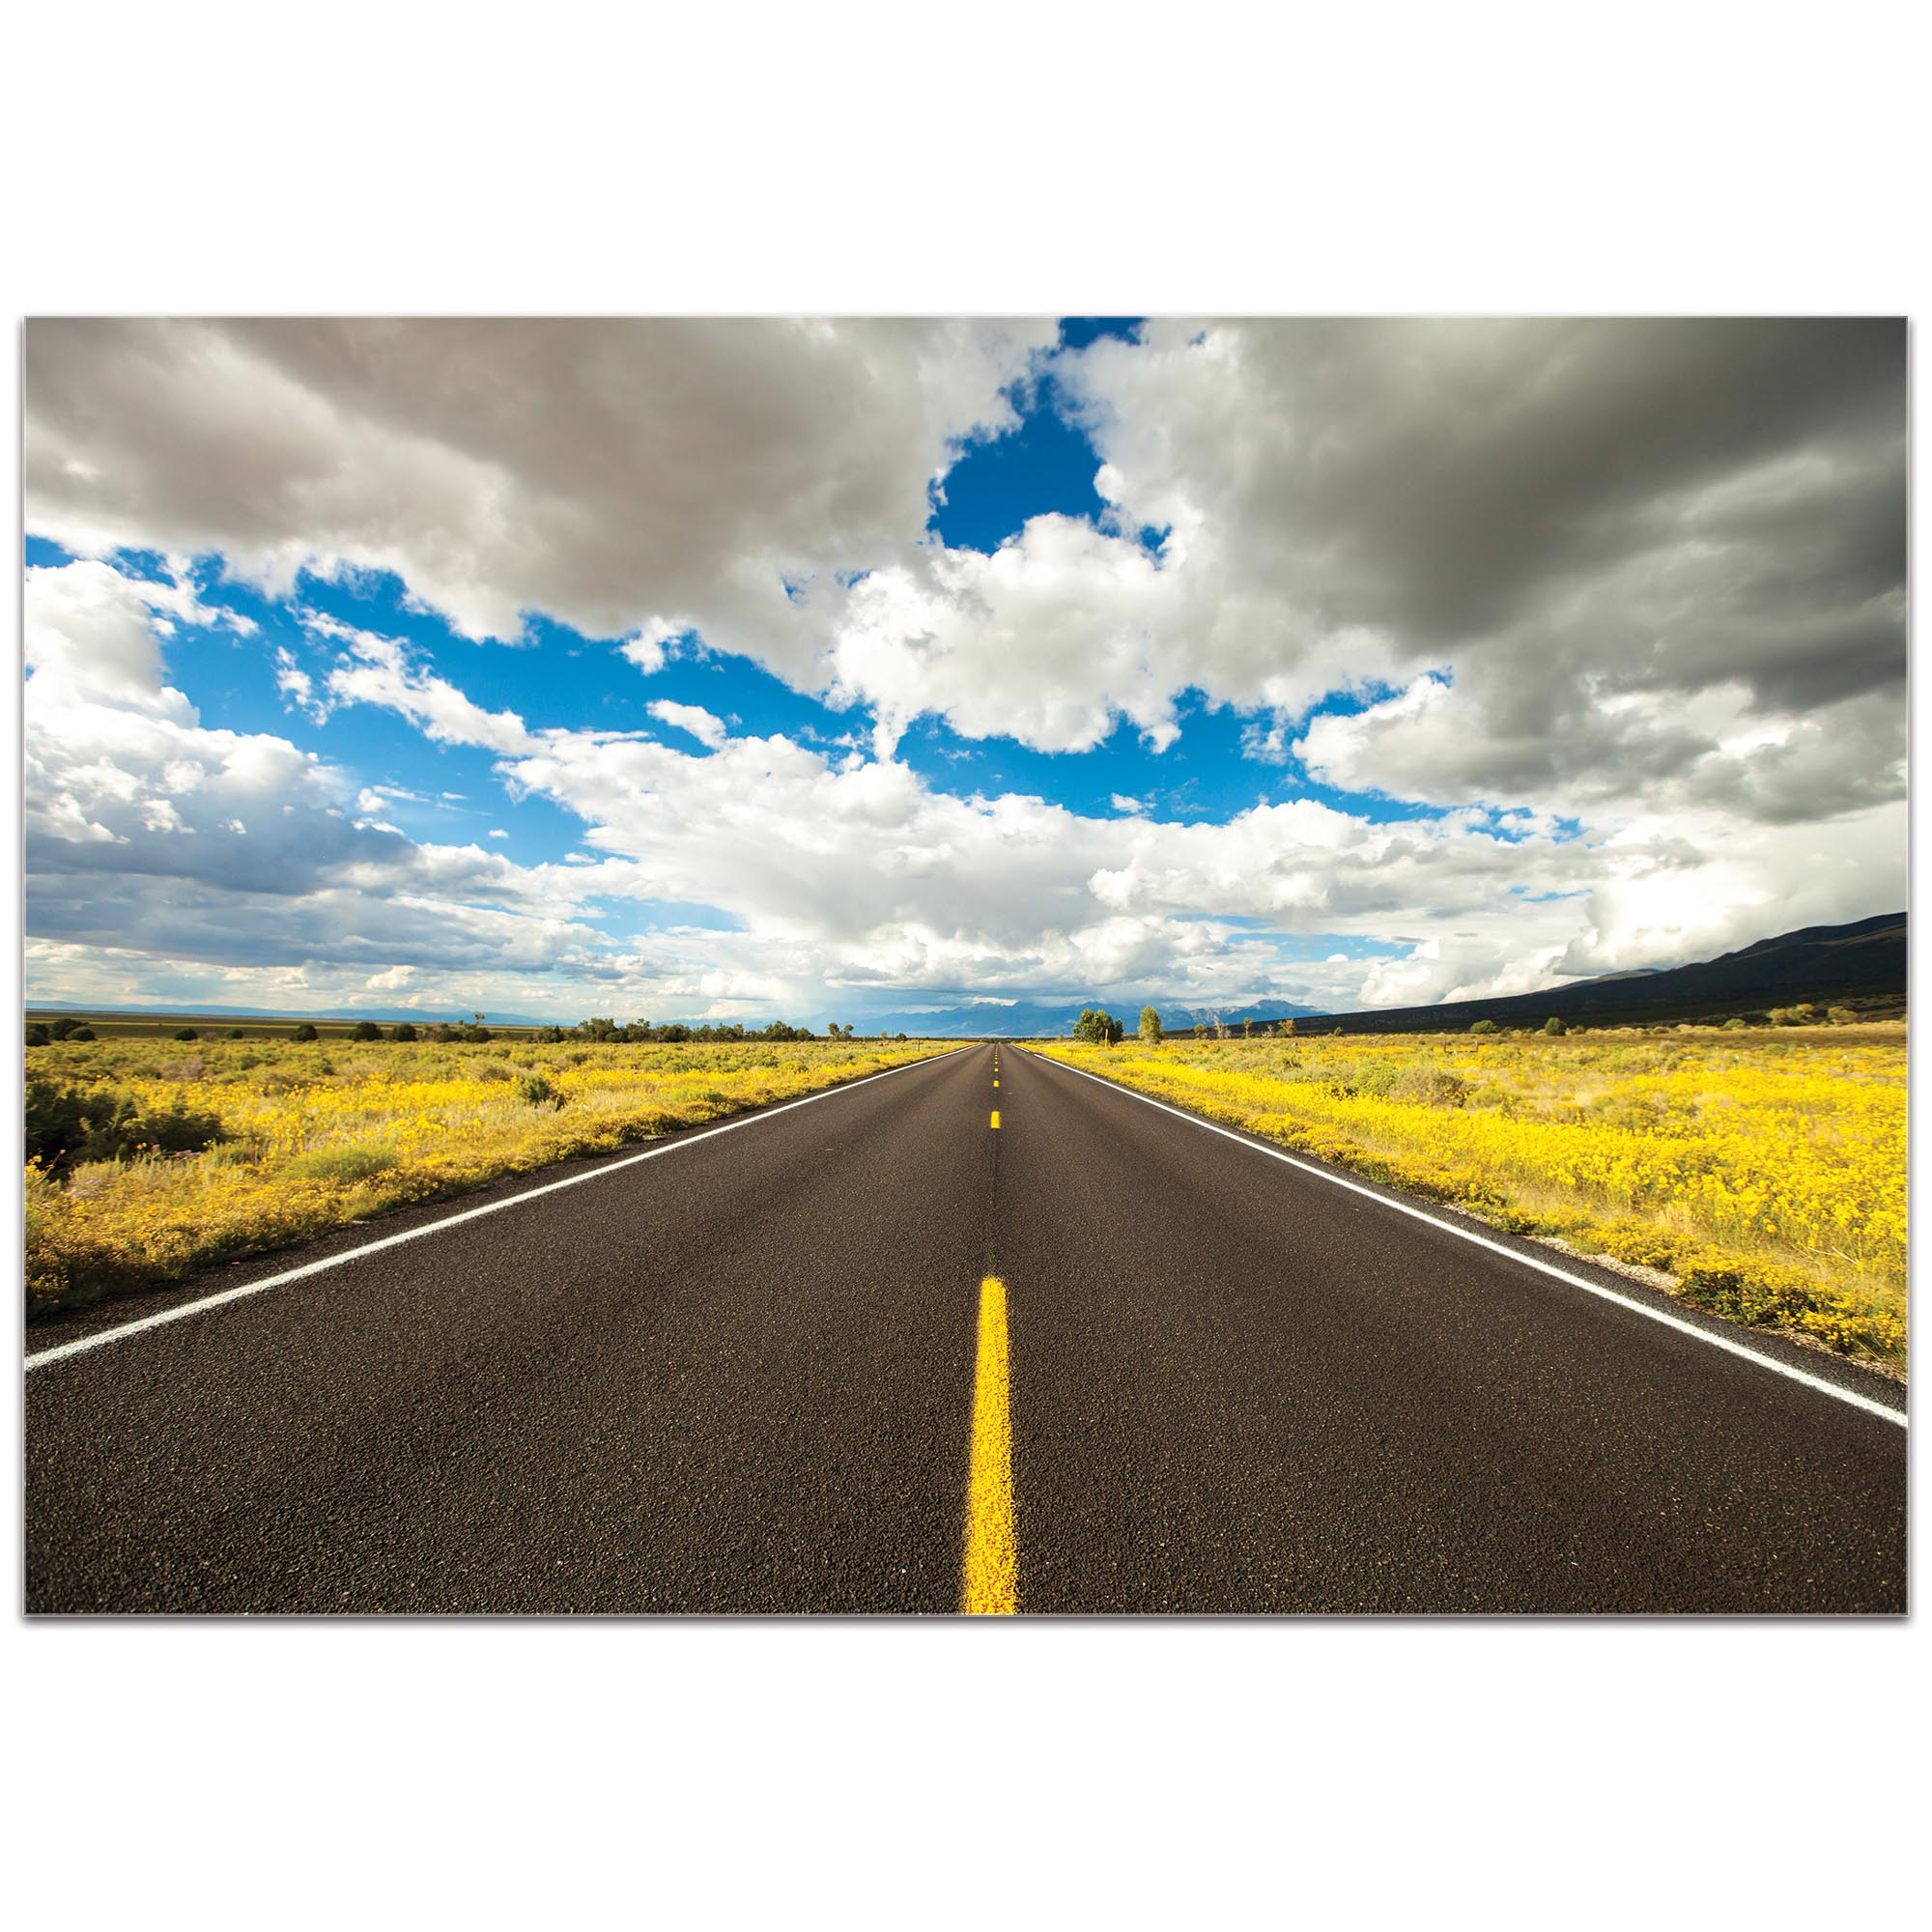 Americana Wall Art 'Road Trip' - Open Road Decor on Metal or Plexiglass - Image 2